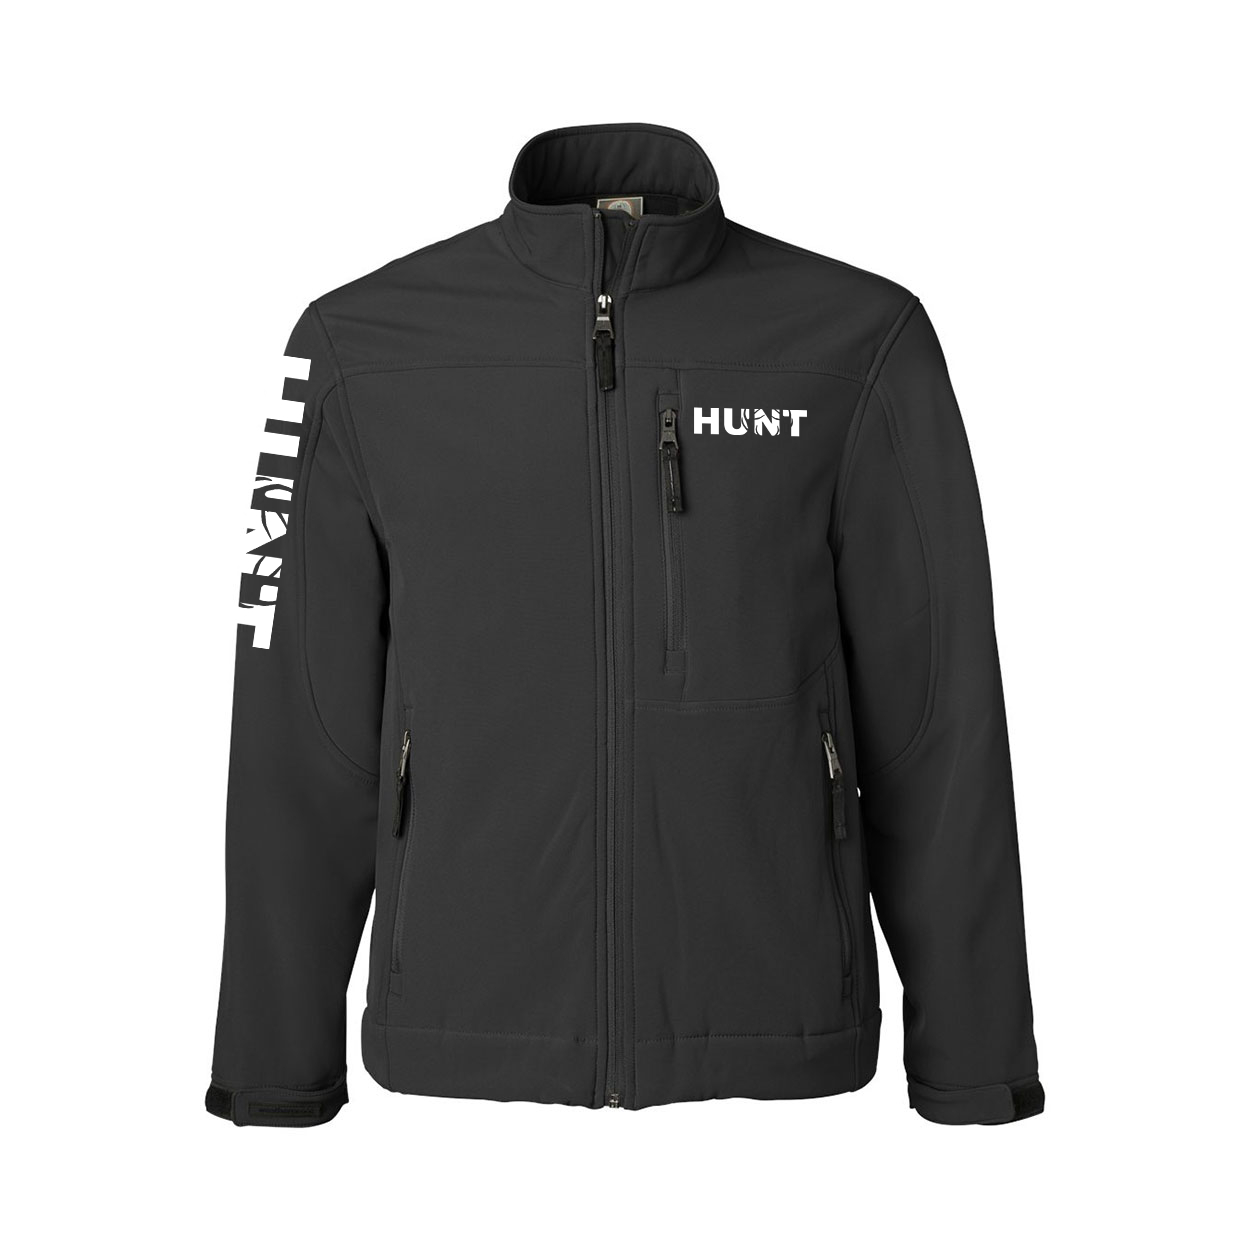 Hunt Rack Logo Classic Soft Shell Weatherproof Jacket (White Logo)